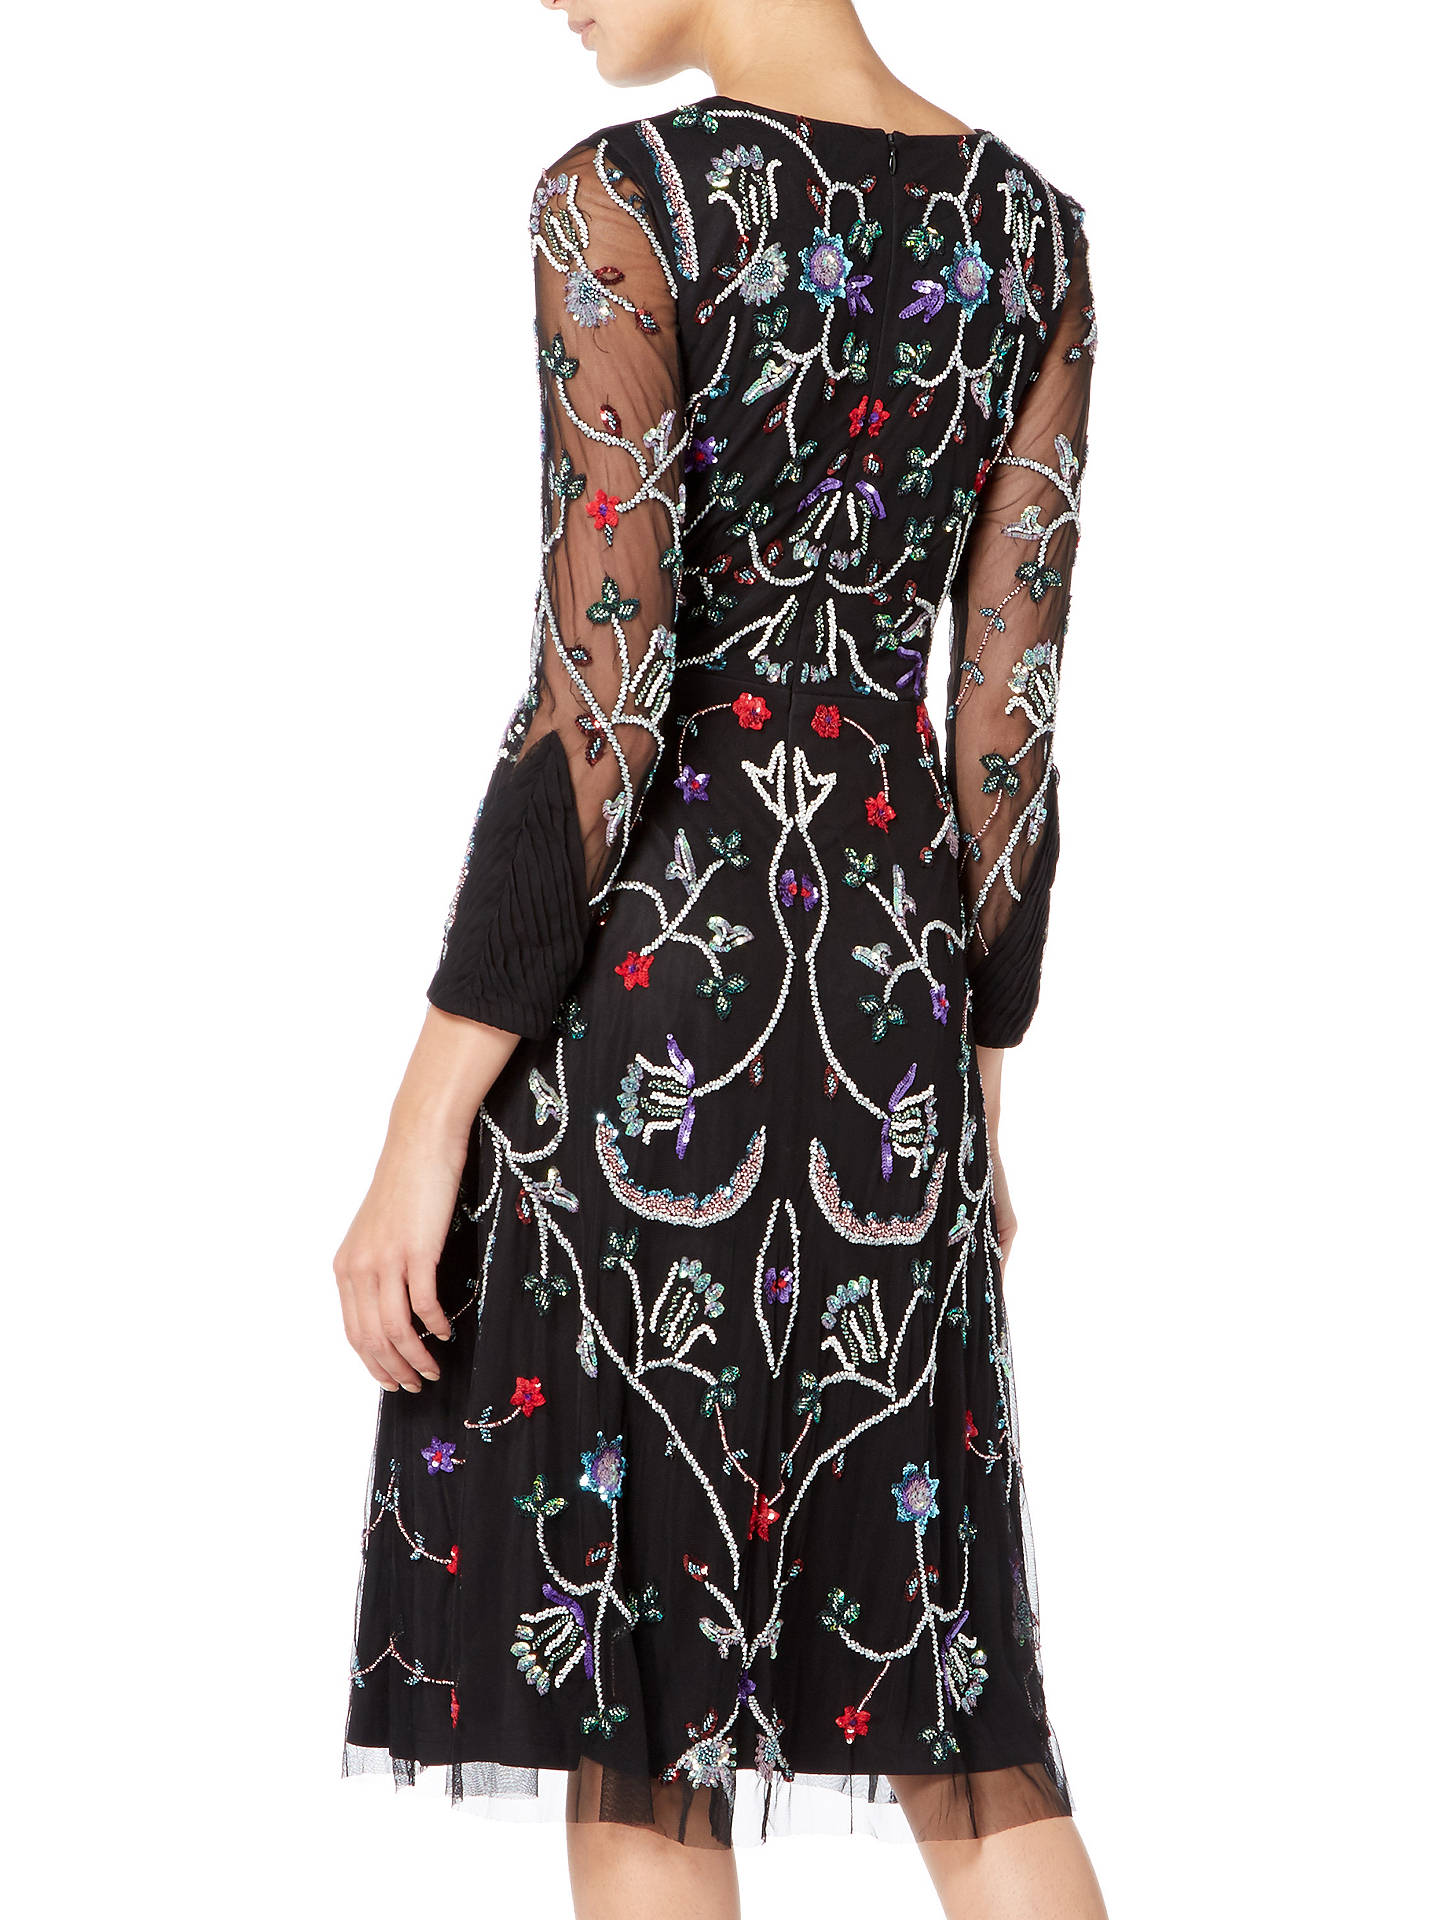 Buy Raishma Floral Embroidered Midi Dress, Black/Multi, 8 Online at johnlewis.com